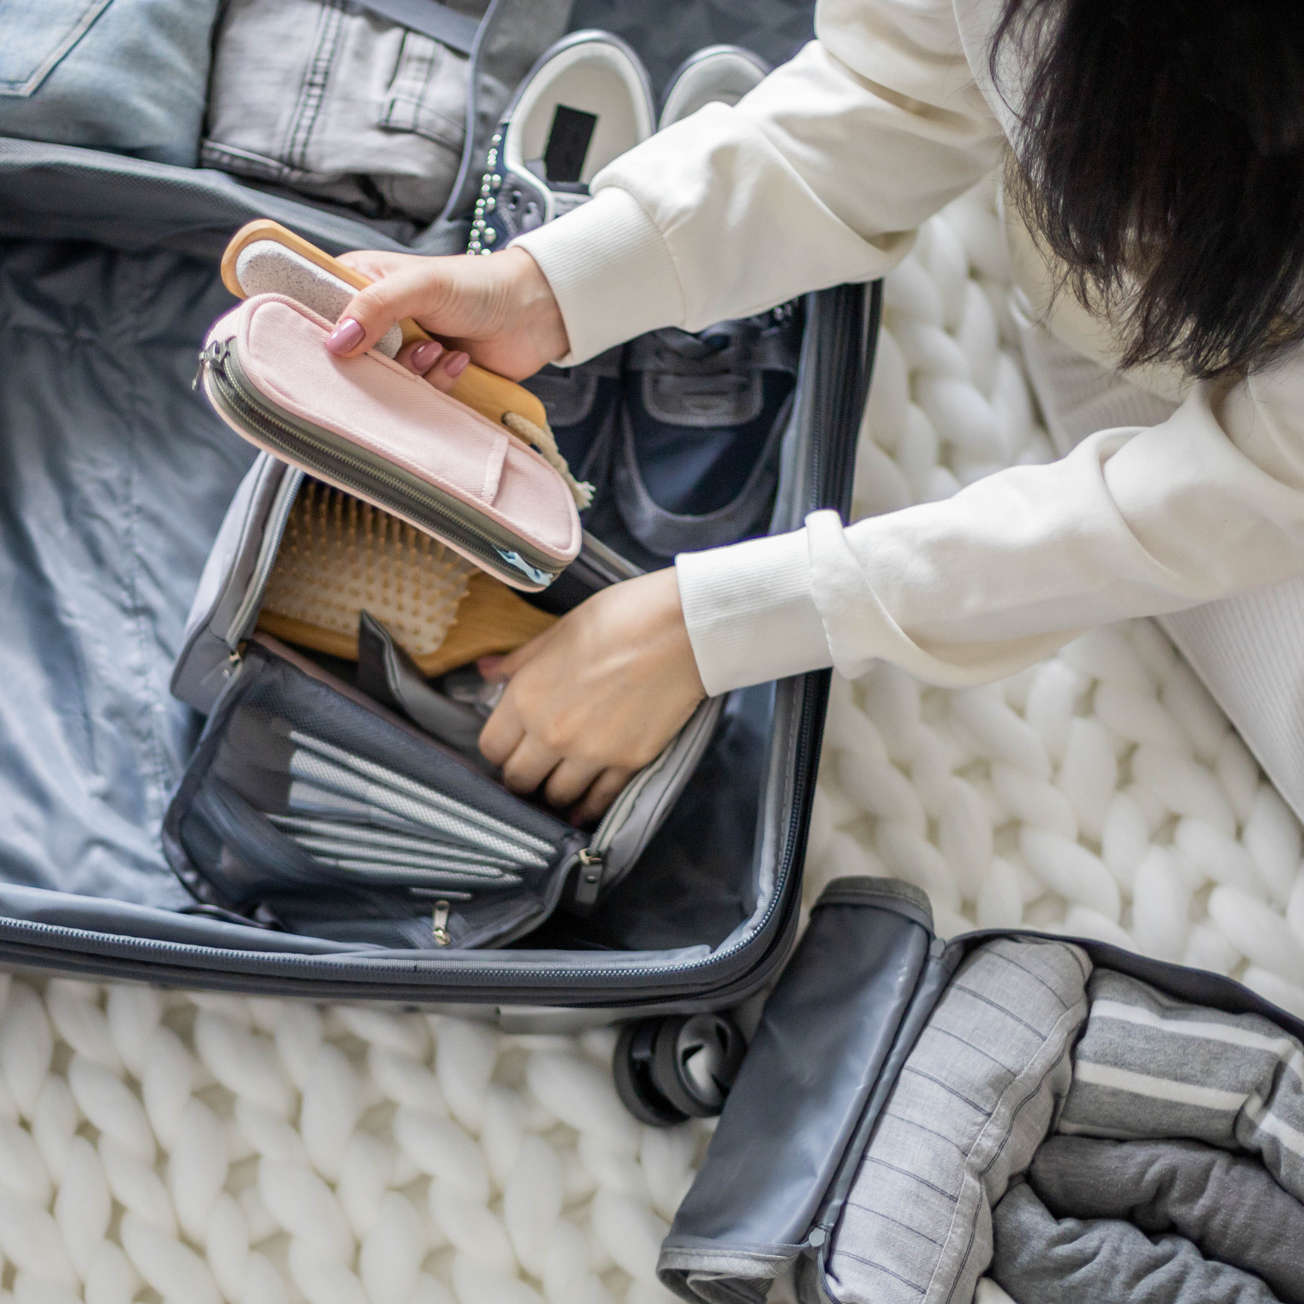 Close-up of a woman packing beauty supplies into a suitcase.